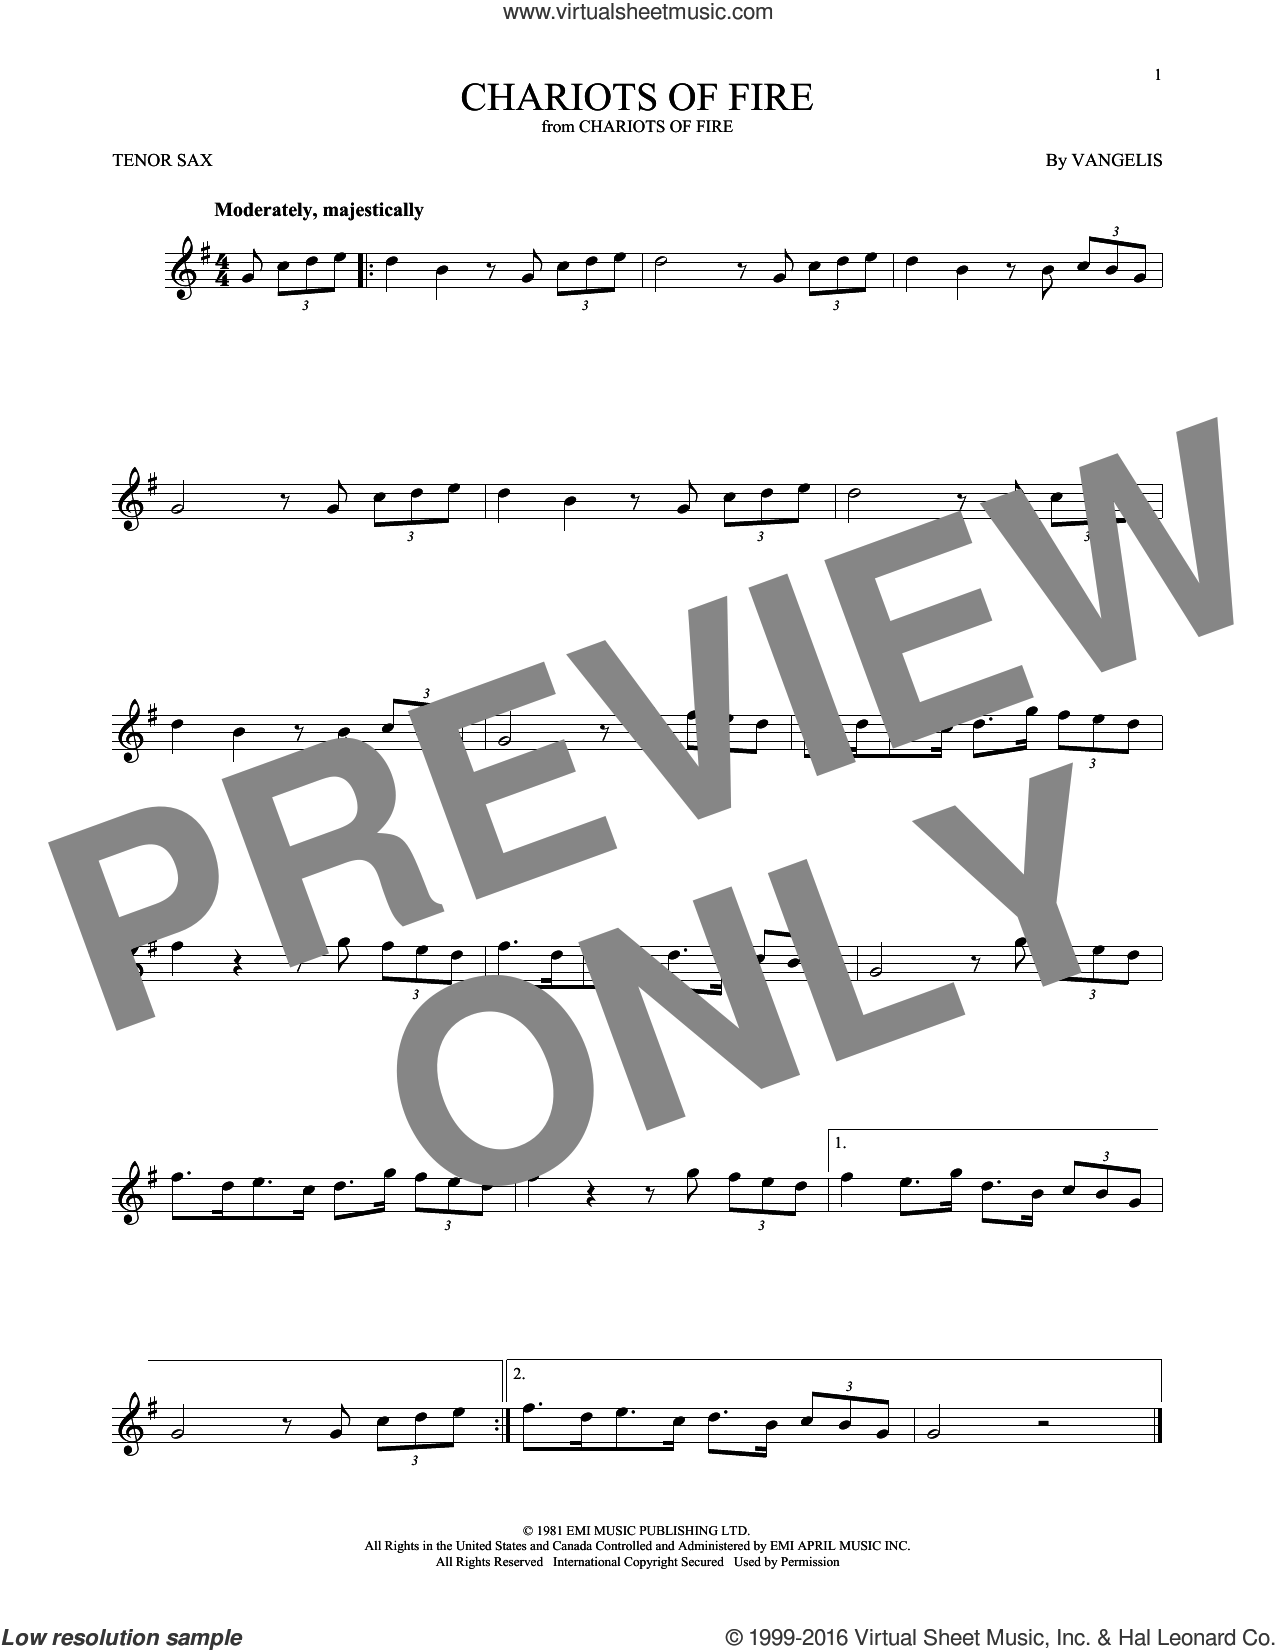 Chariots Of Fire sheet music for tenor saxophone solo ( Sax) by Vangelis, intermediate tenor saxophone ( Sax)